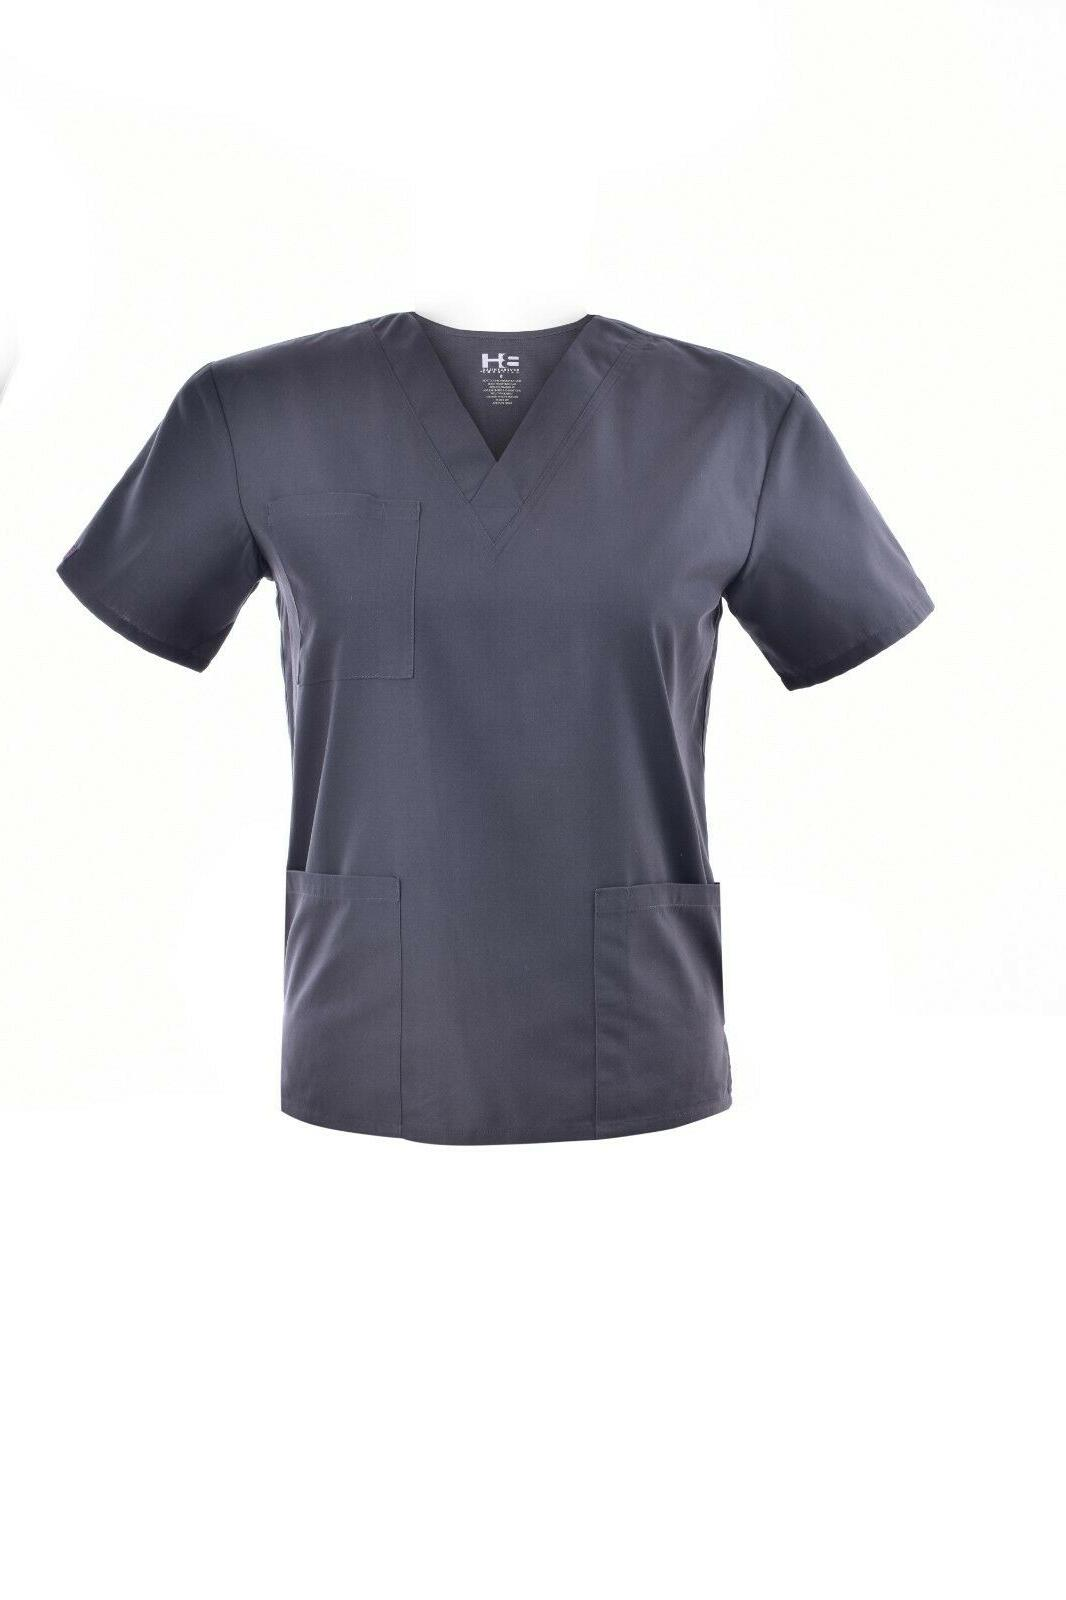 Unisex V-Neck Pant Men Uniform